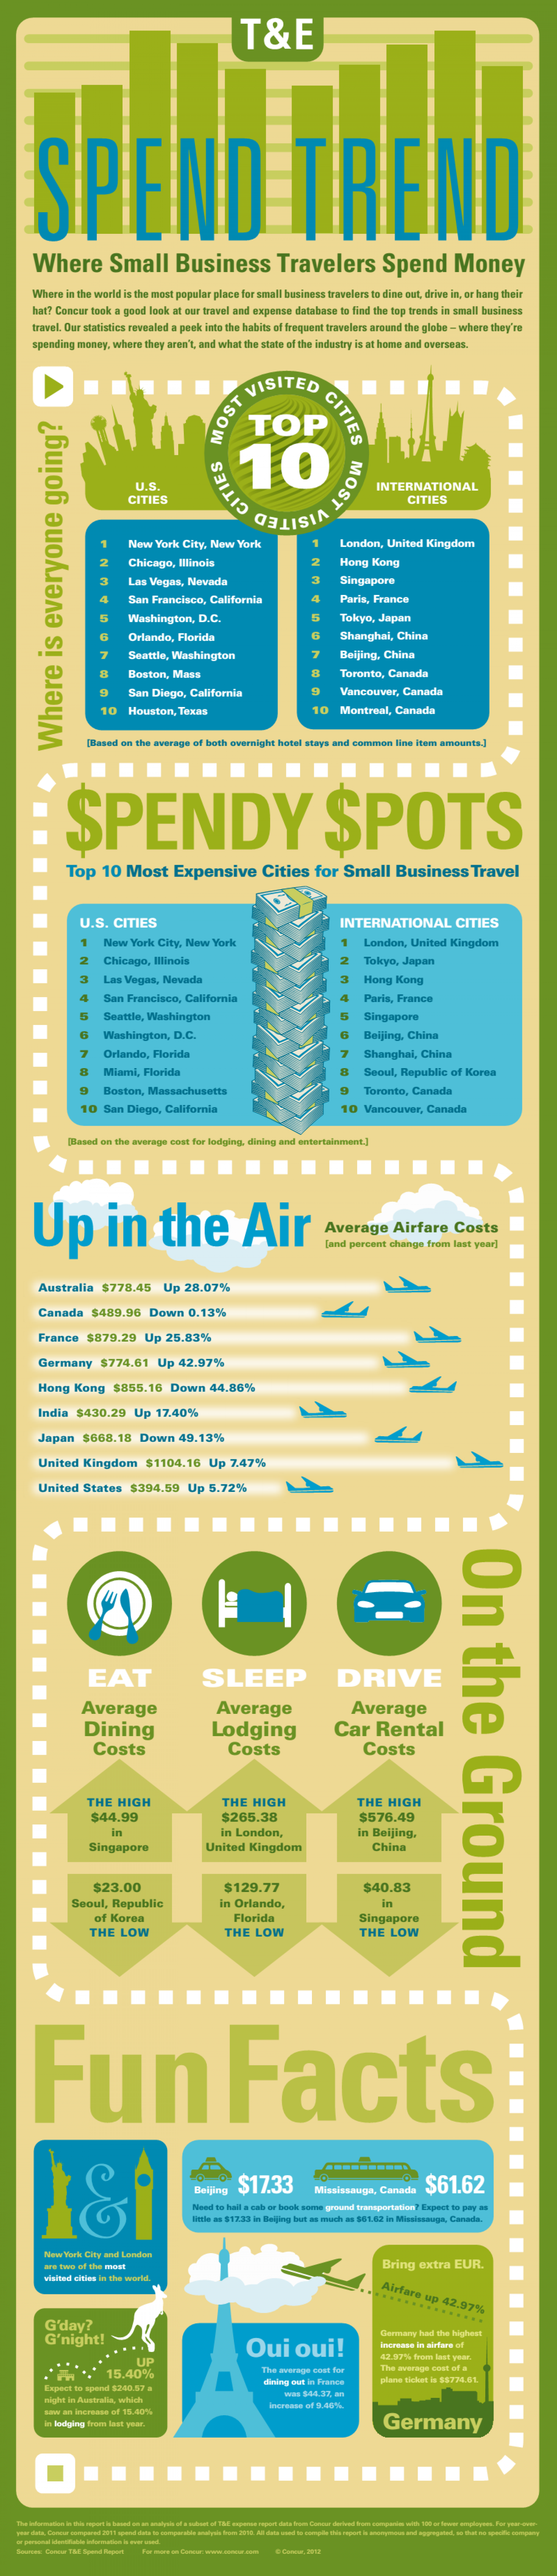 Travel & Expense Management Infographic